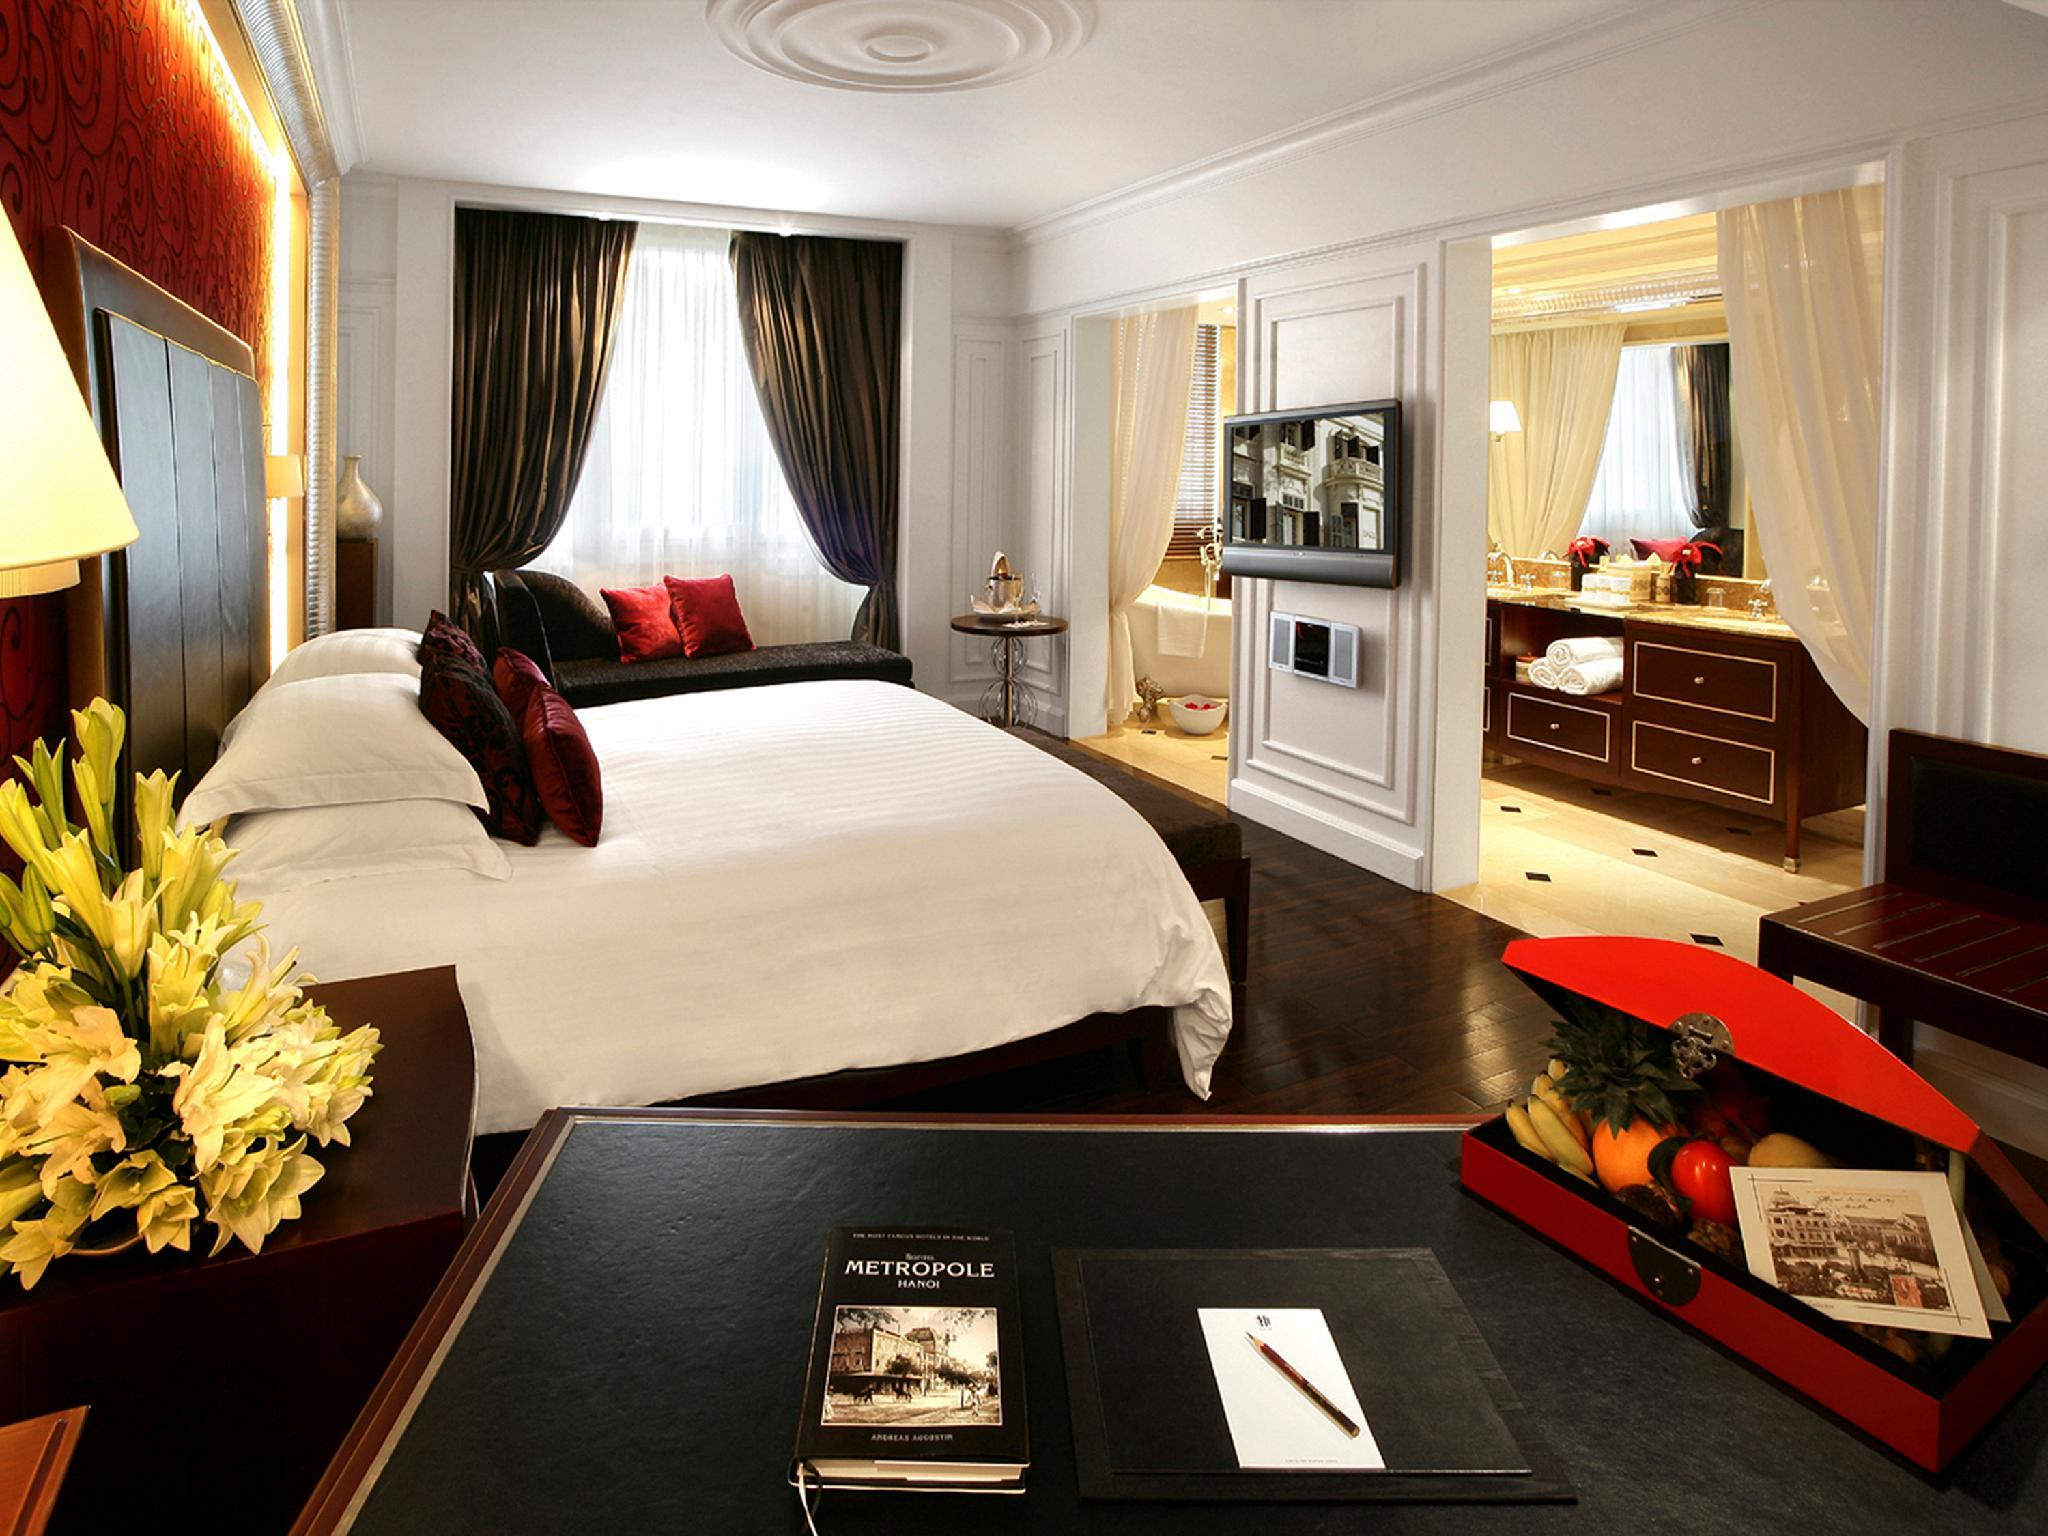 Opera Grand Premium Club extragrande (Opera Grand Premium Club King)